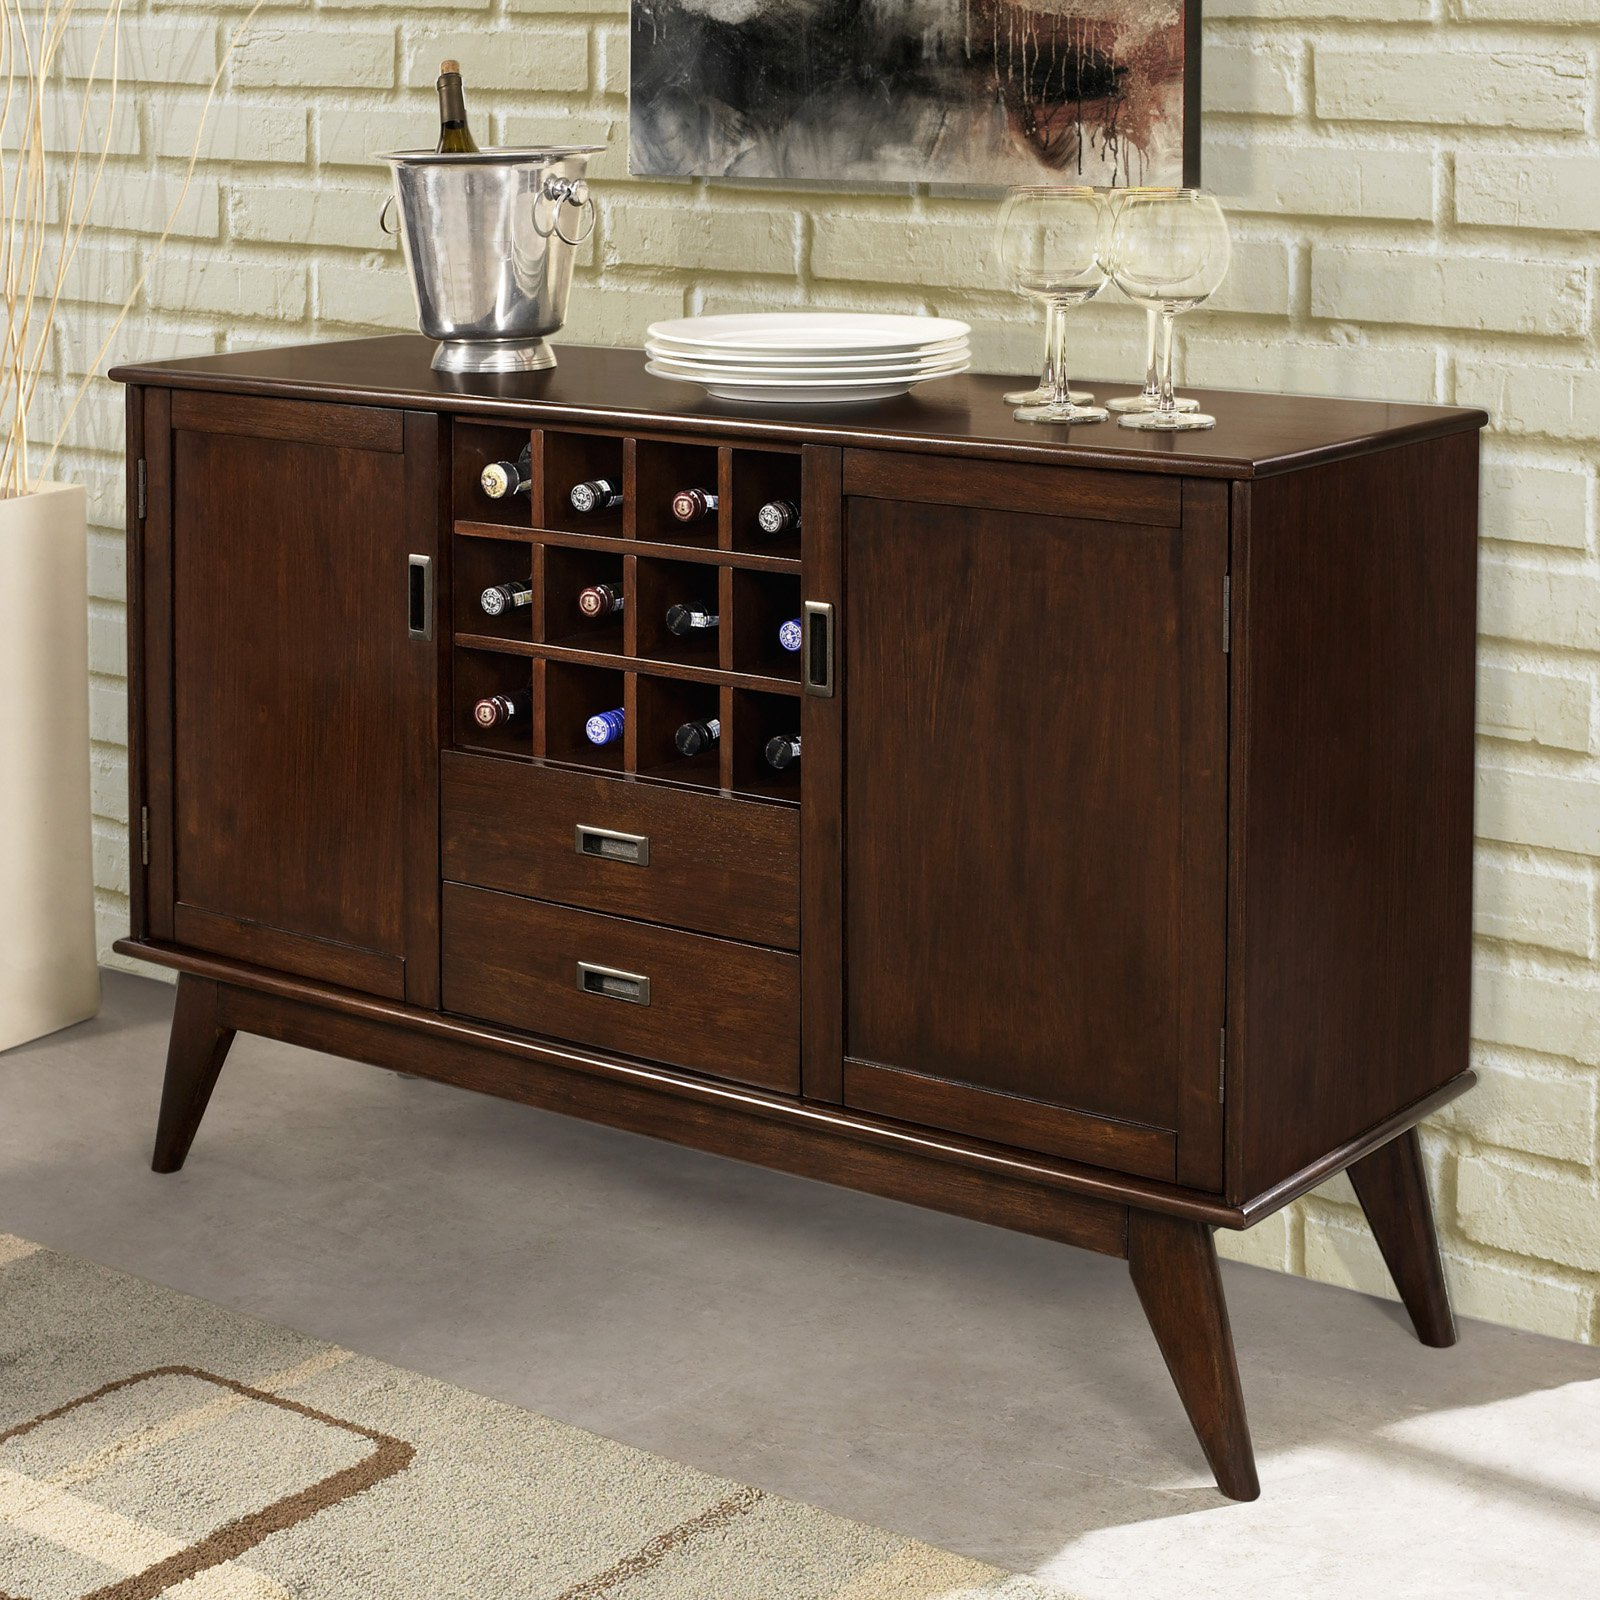 Simpli Home Draper Mid Century Sideboard Buffet & Winerack Within Mid Century Brown Sideboards (View 9 of 20)